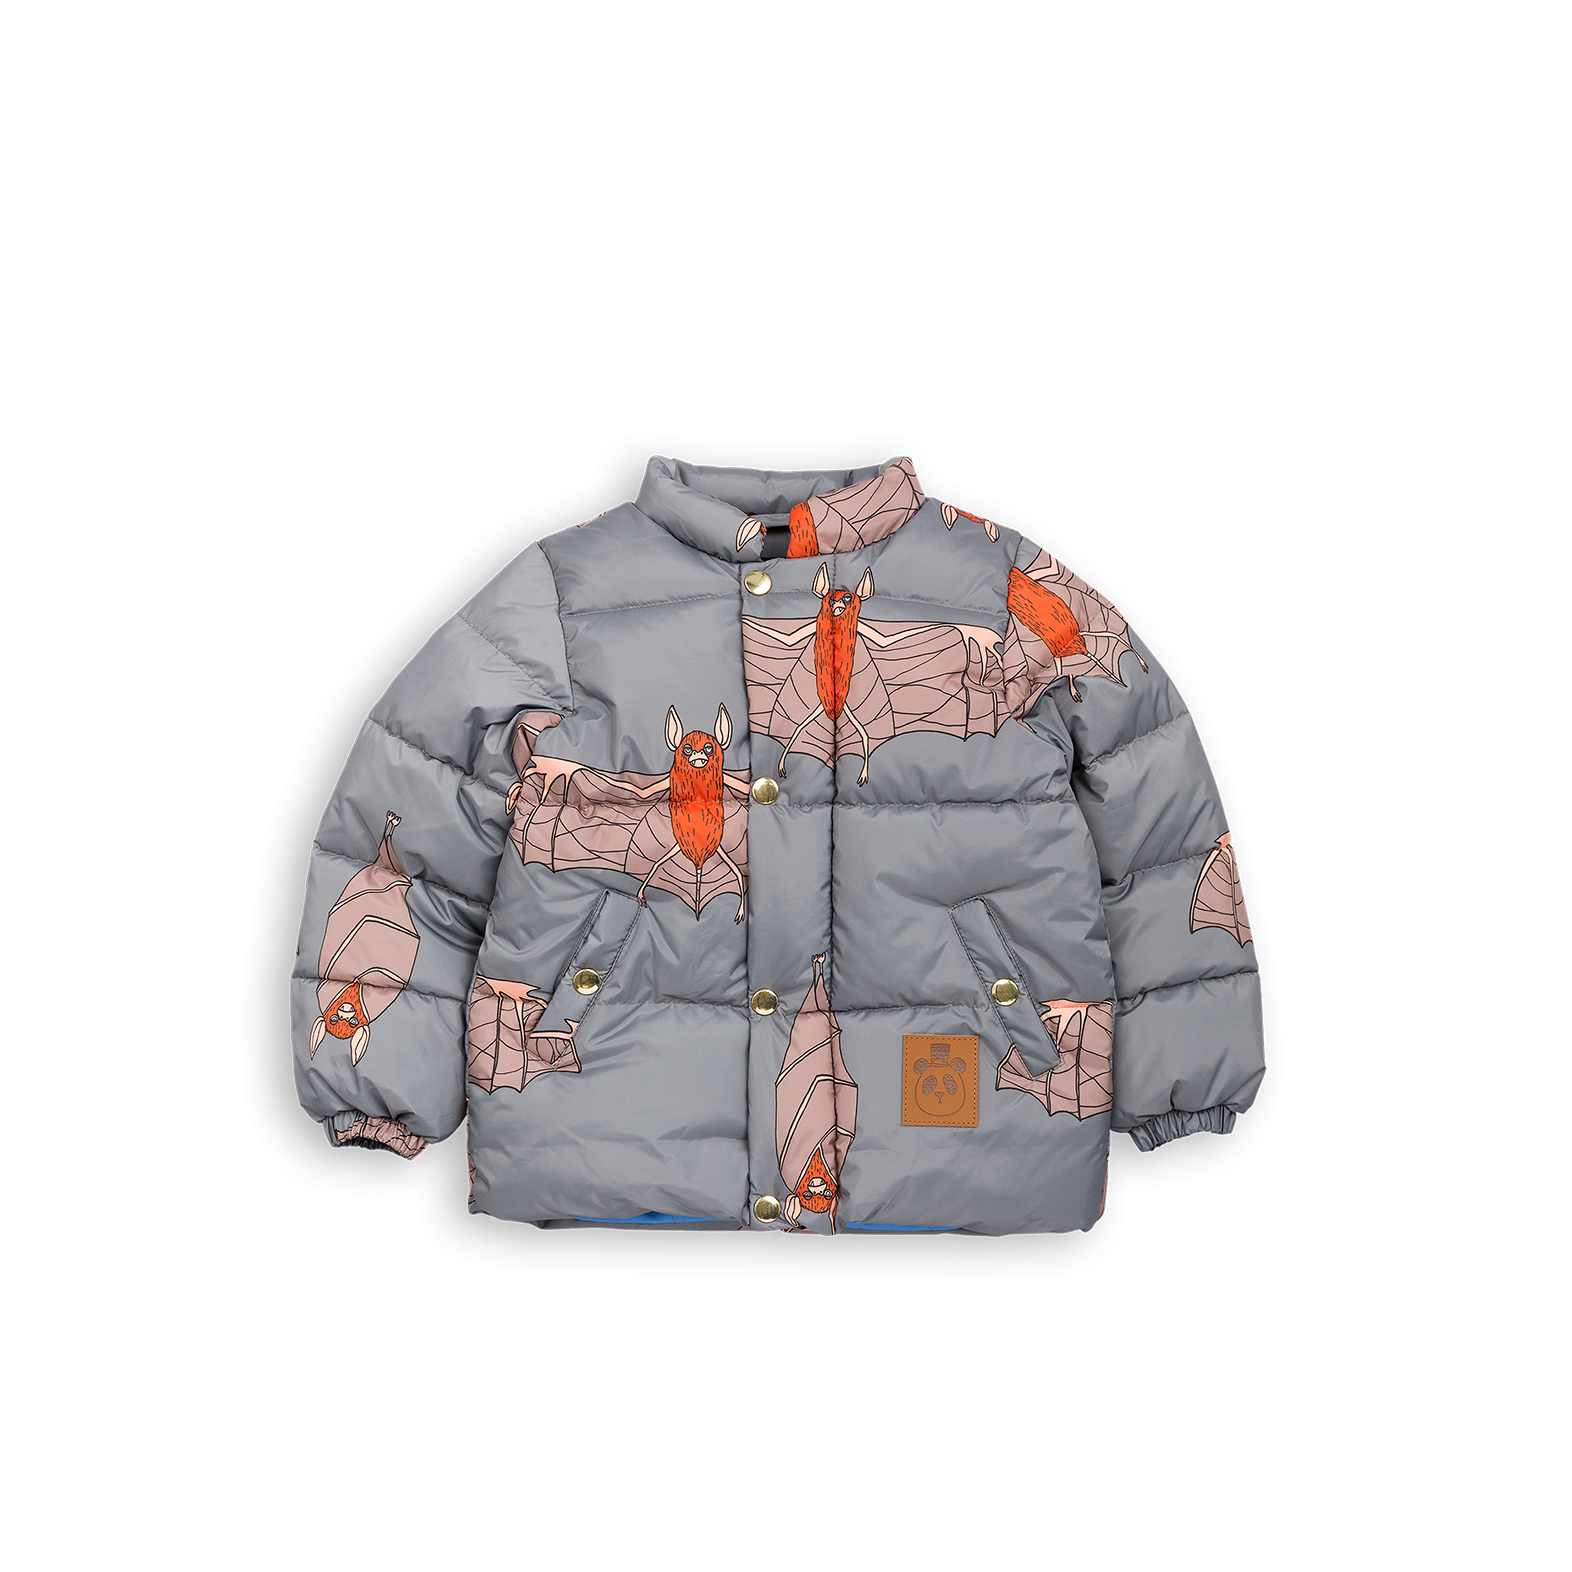 Pin By Joanna Reynolds On The Little Dude Designer Baby Clothes Girl Kids Bomber Jacket Puffy Jacket [ 1572 x 1572 Pixel ]